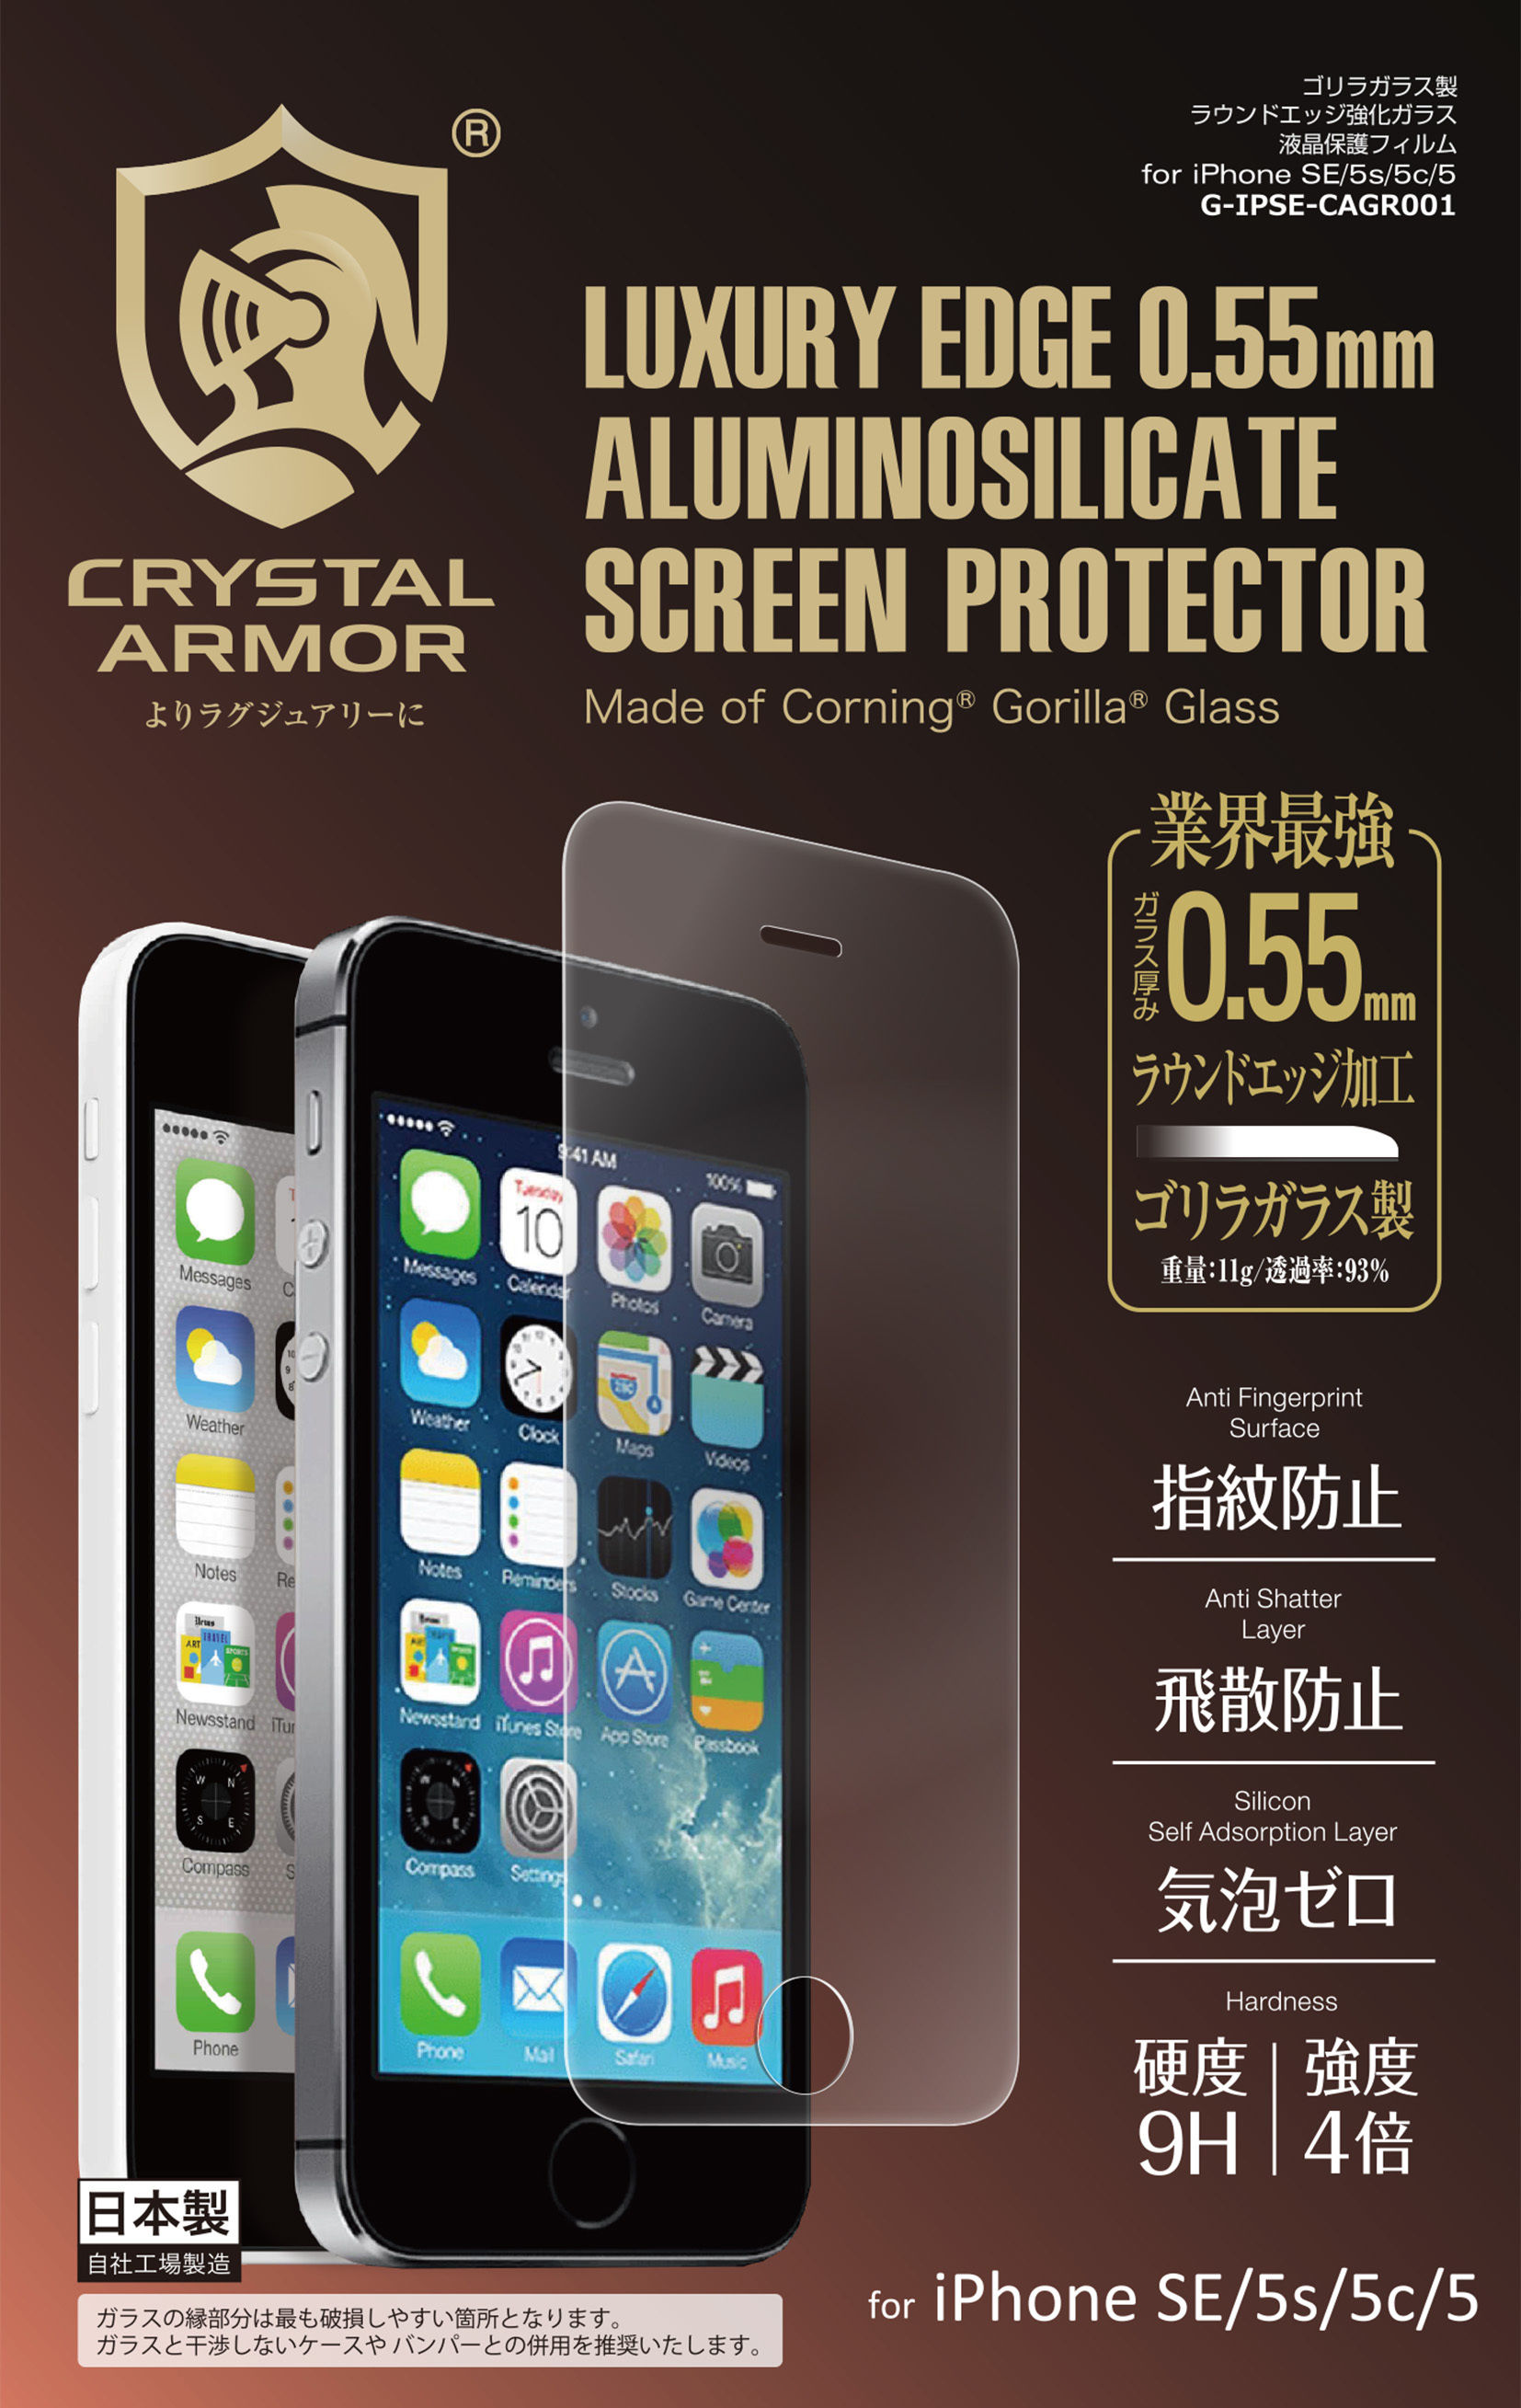 【iPhone SE】クリスタルアーマー(R)  0.55mmゴリラガラス製強化ガラス 液晶保護 for iPhone SE / 5s / 5c / 5【IPSE-CAGR001】